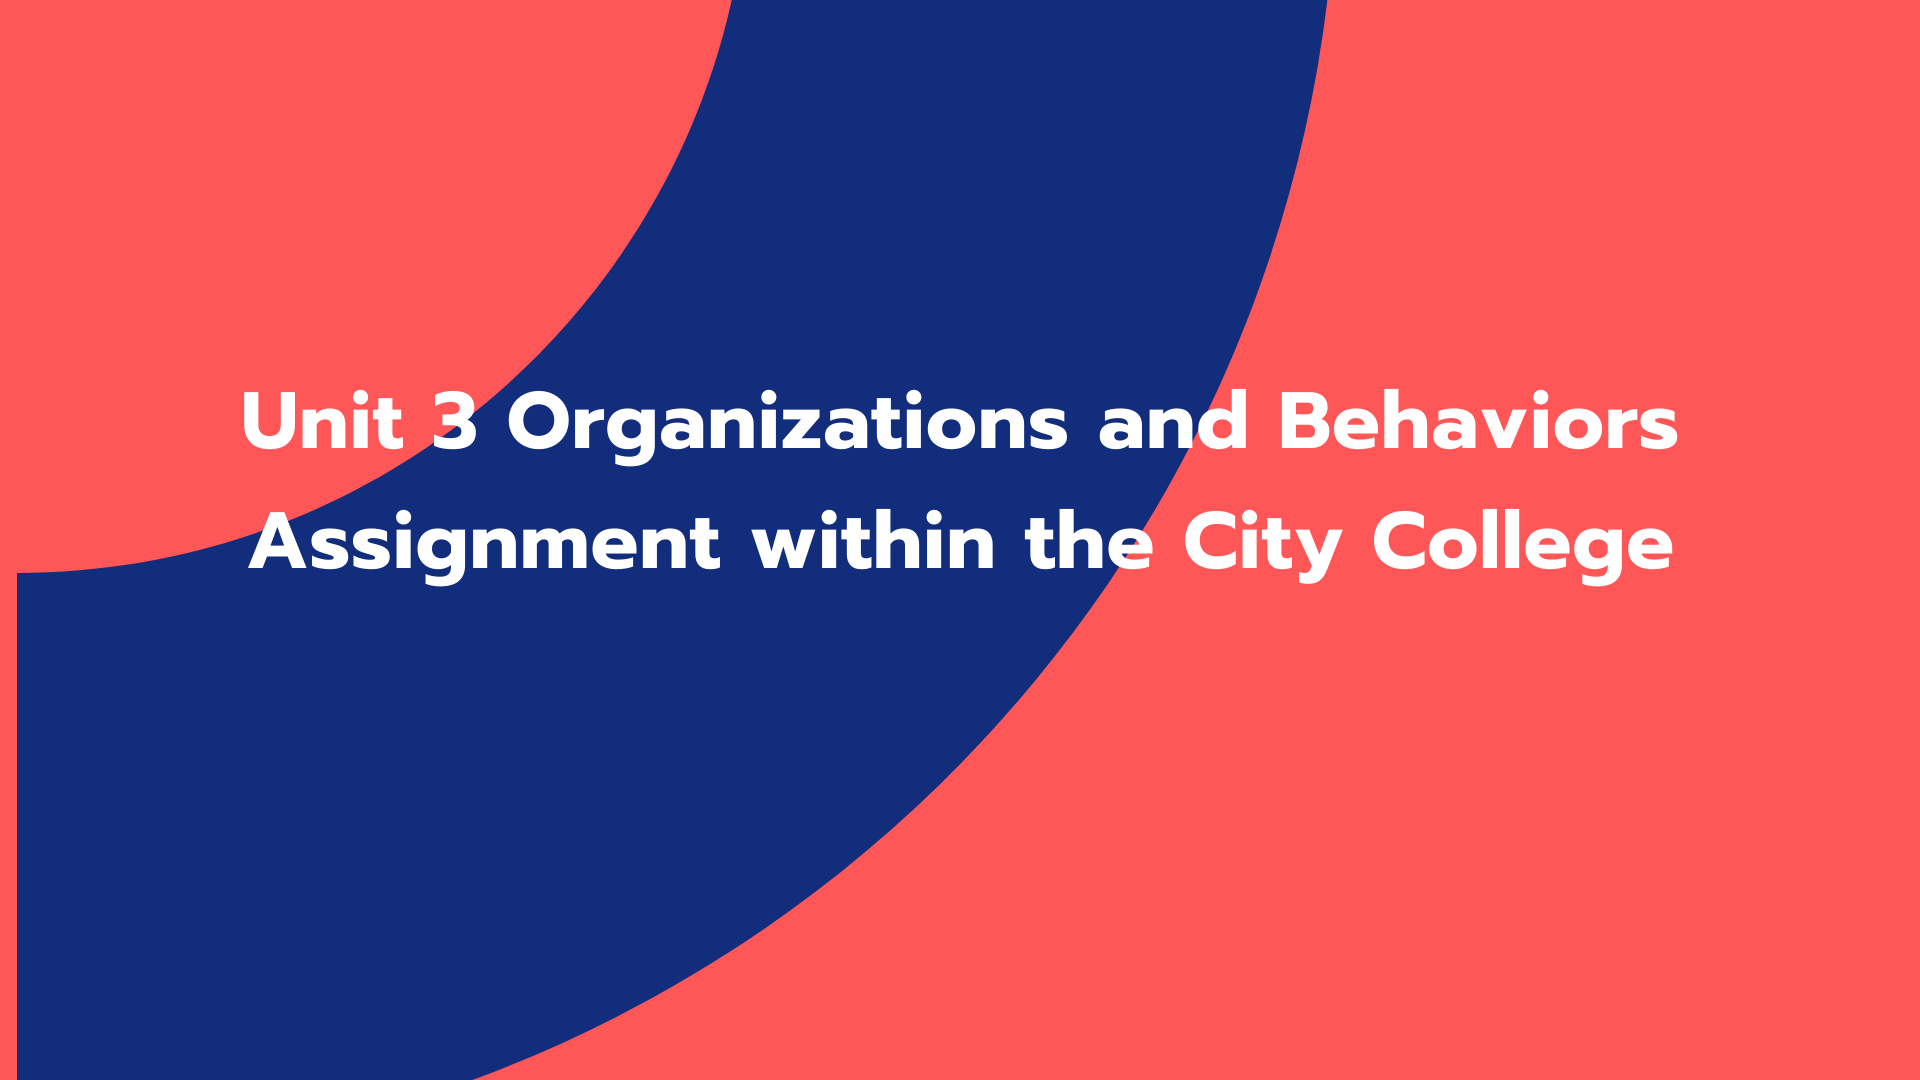 Unit 3 Organizations and Behaviors Assignment within the City College